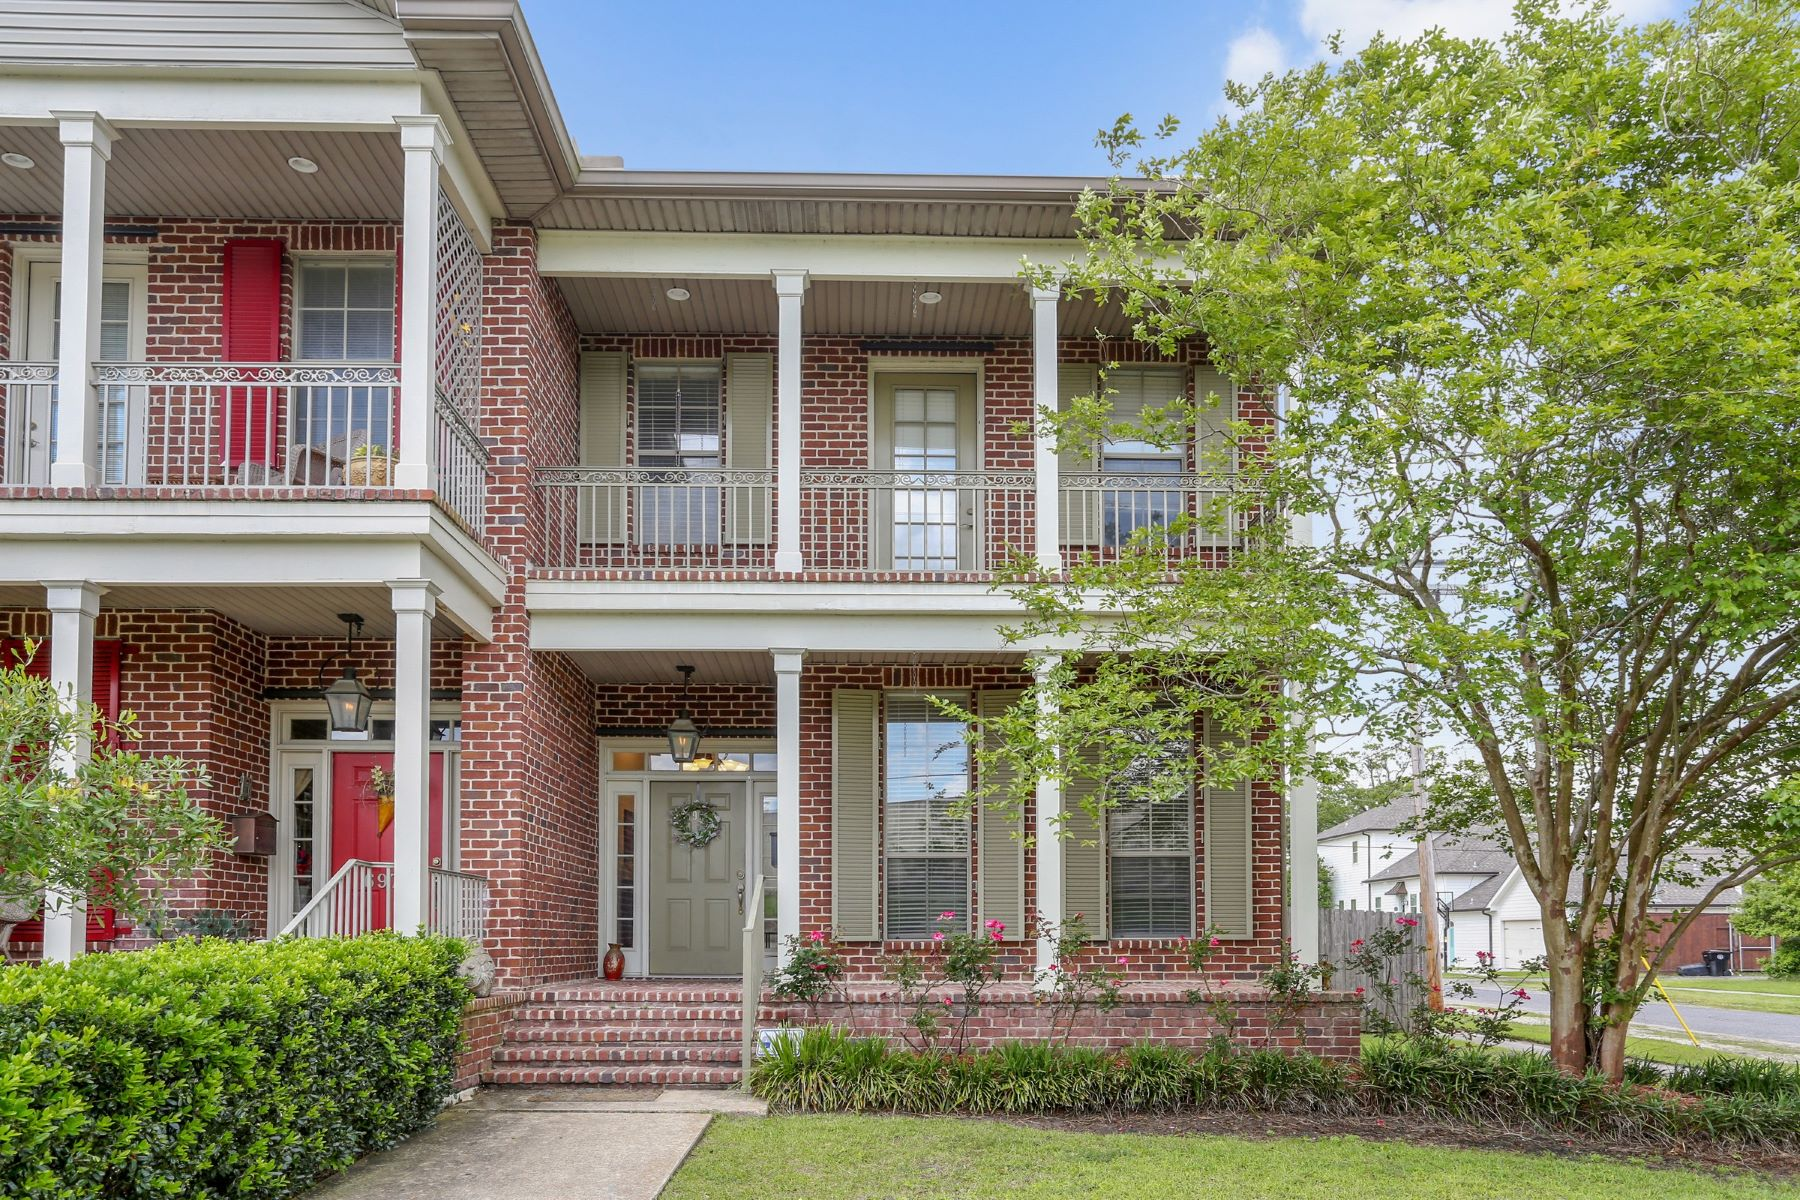 Townhouse for Sale at 6980 Orleans Avenue 6980 Orleans Ave New Orleans, Louisiana 70124 United States